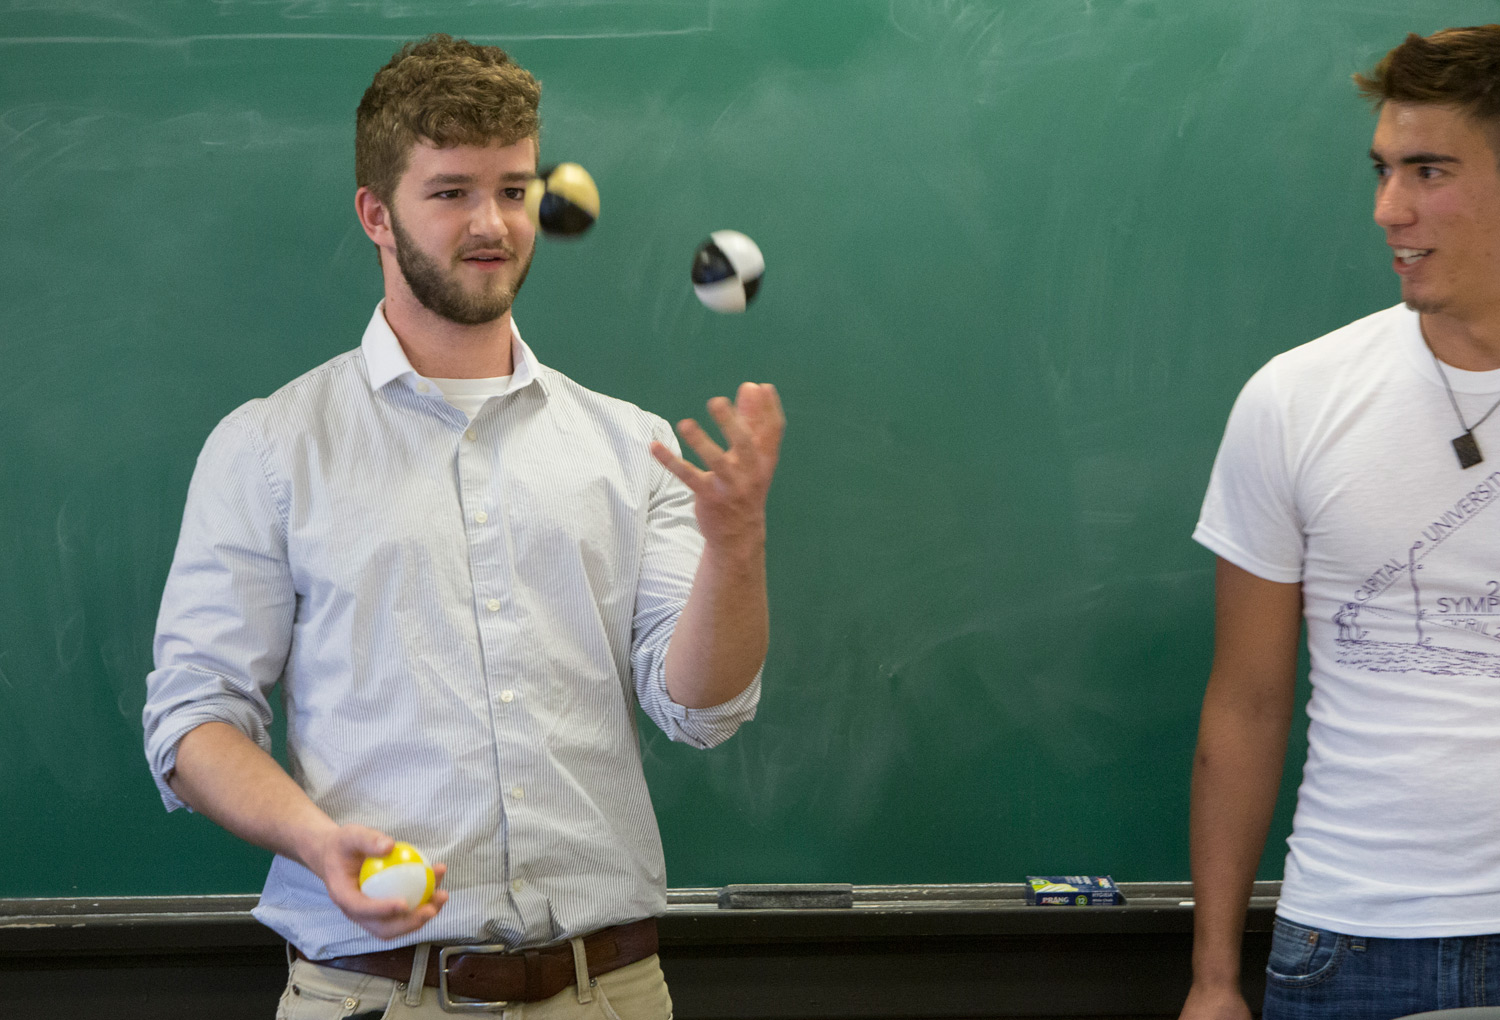 2016 Symposium on Undergraduate Research Juggling Demonstration